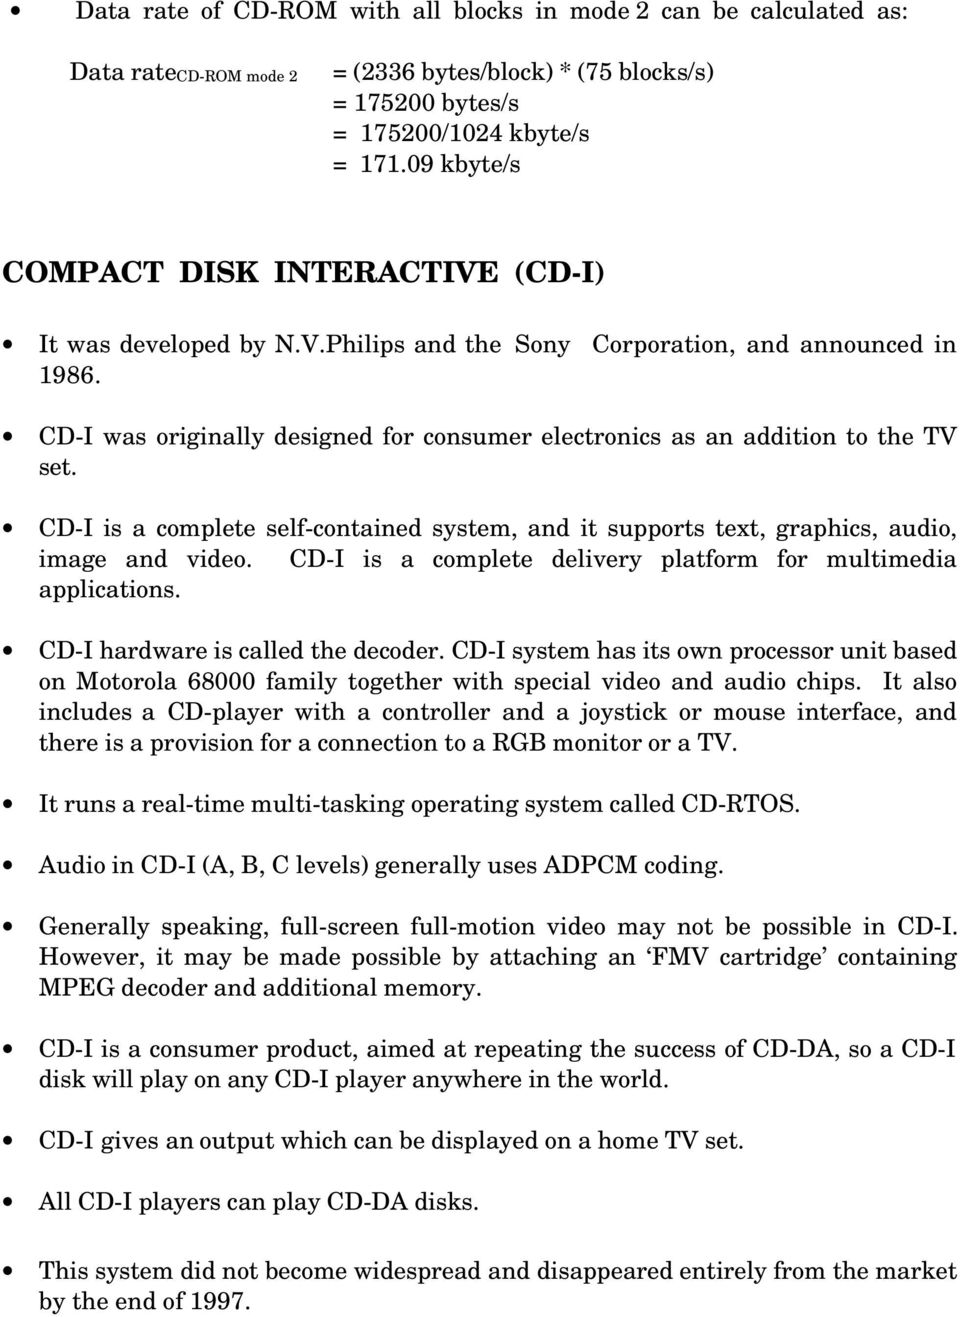 CD-I was originally designed for consumer electronics as an addition to the TV set. CD-I is a complete self-contained system, and it supports text, graphics, audio, image and video.